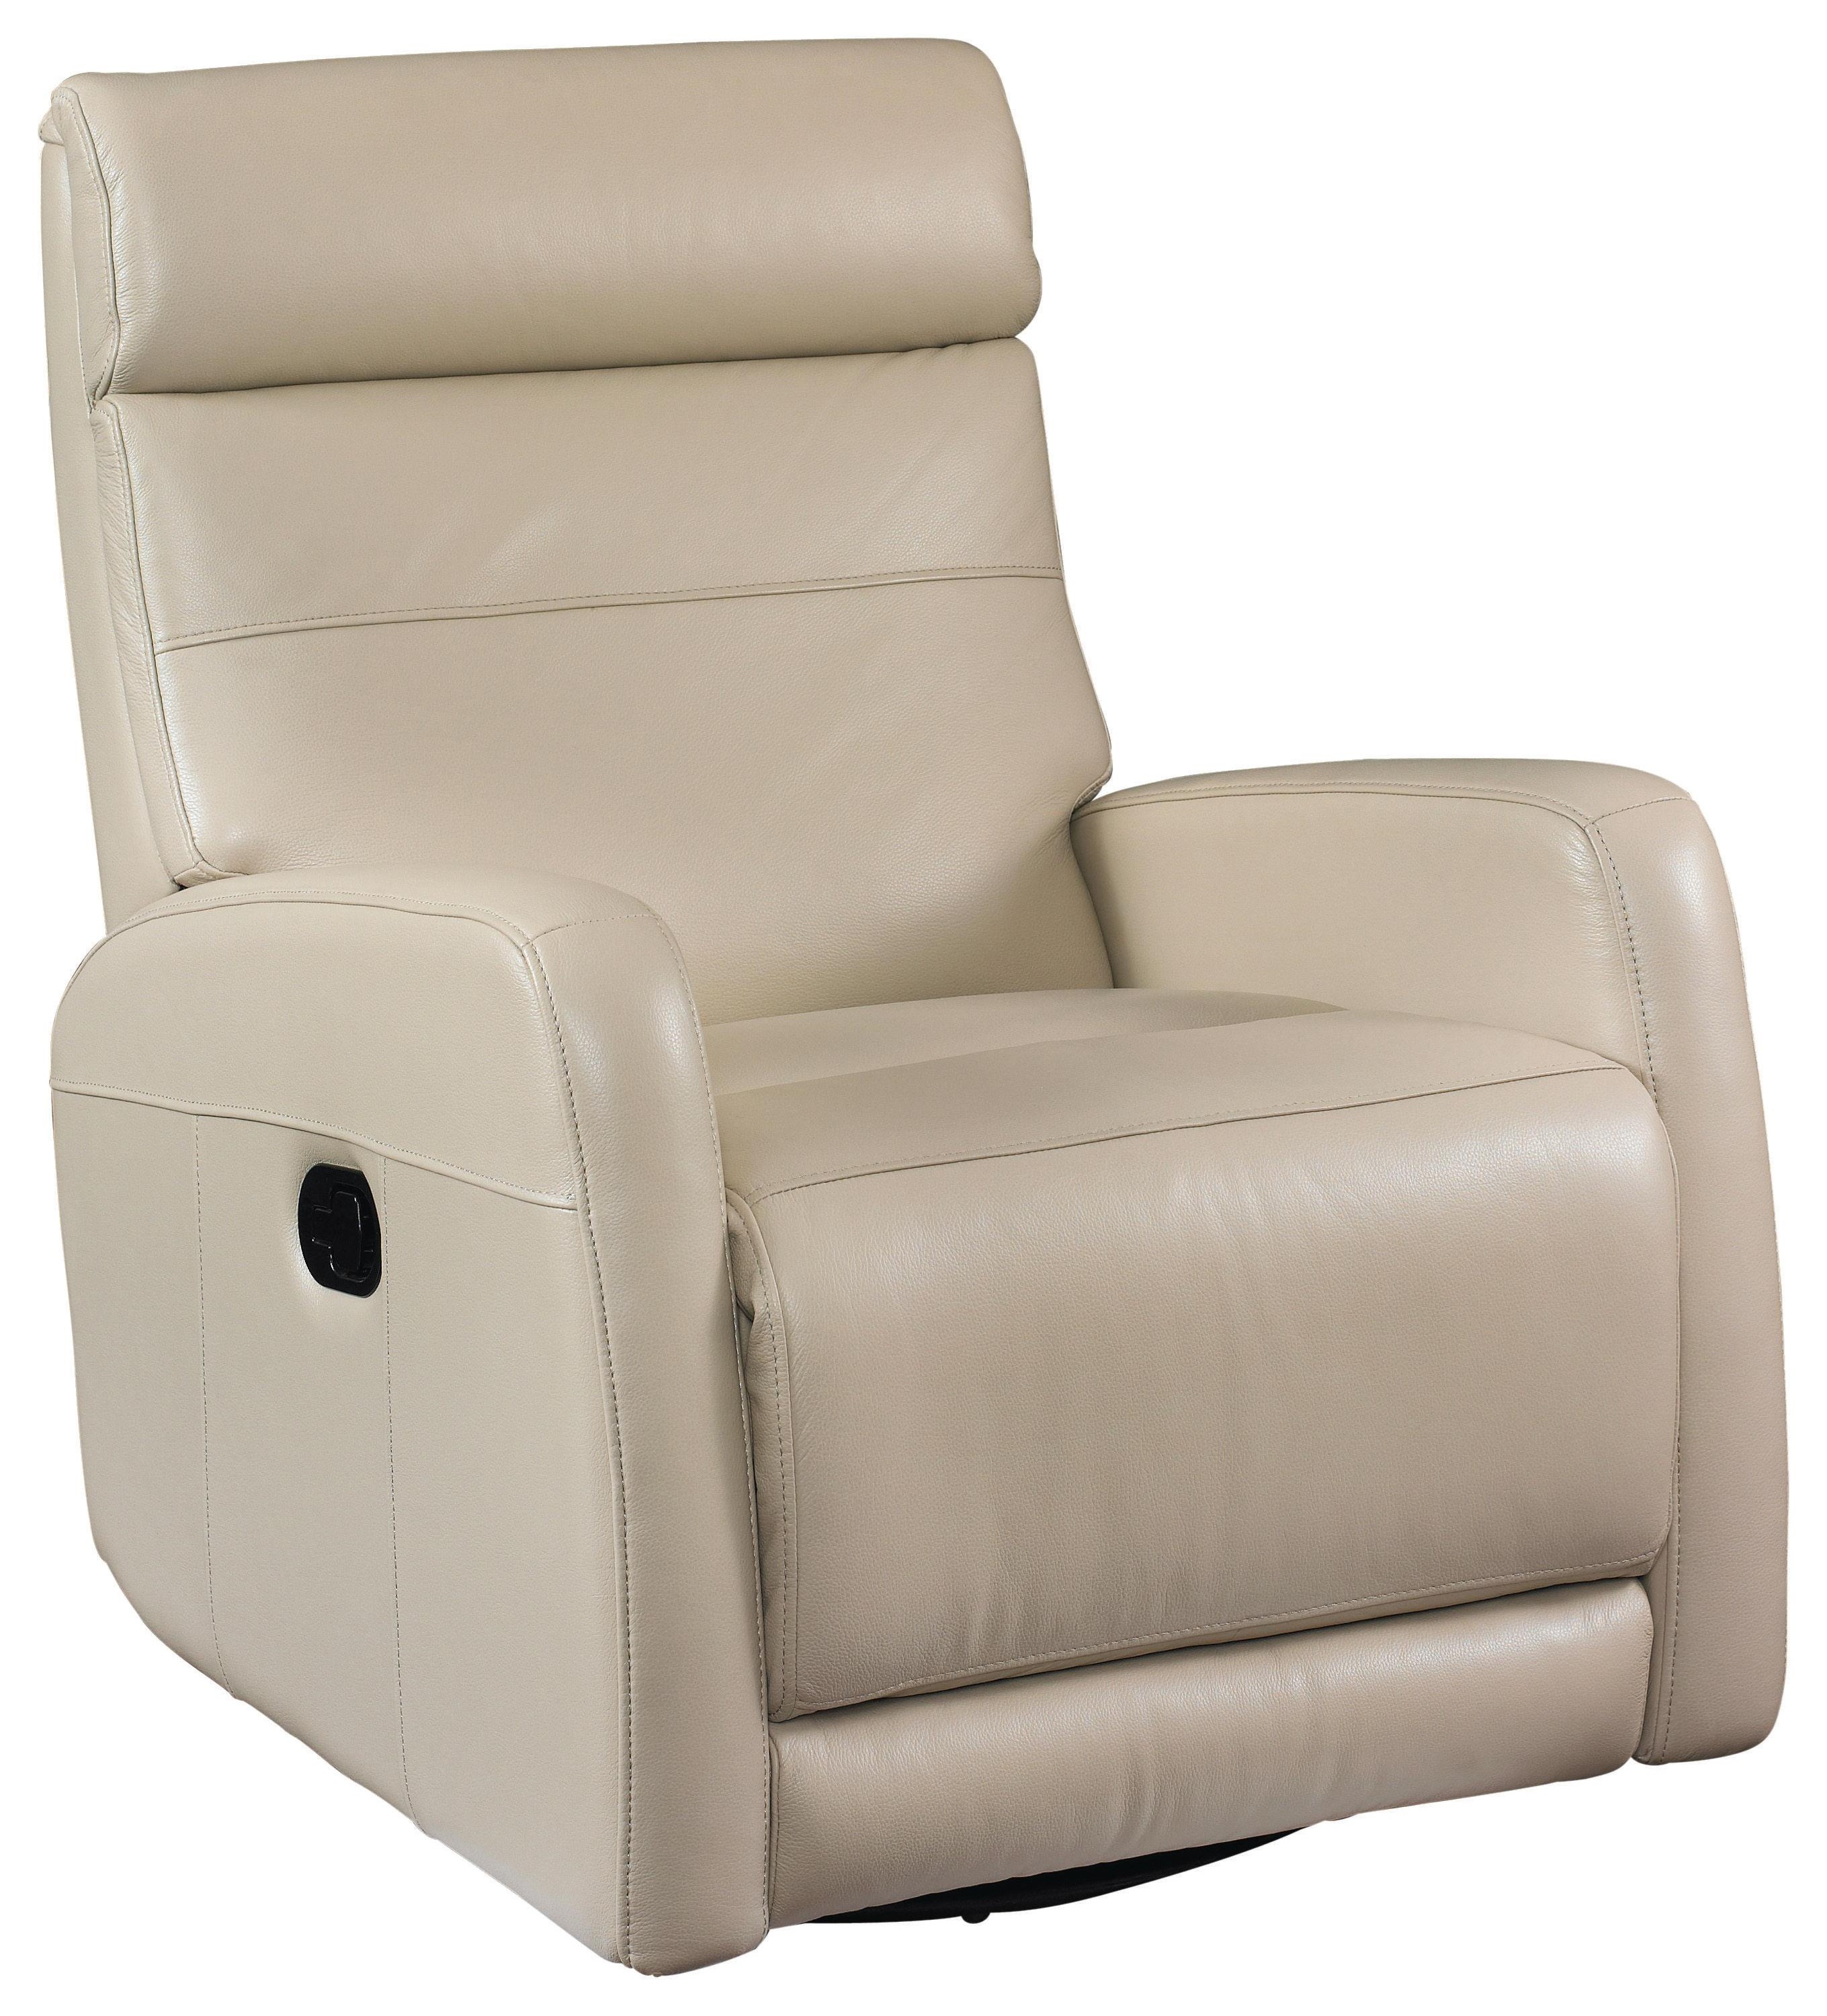 Swivel Glider Recliner in Taupe Leather